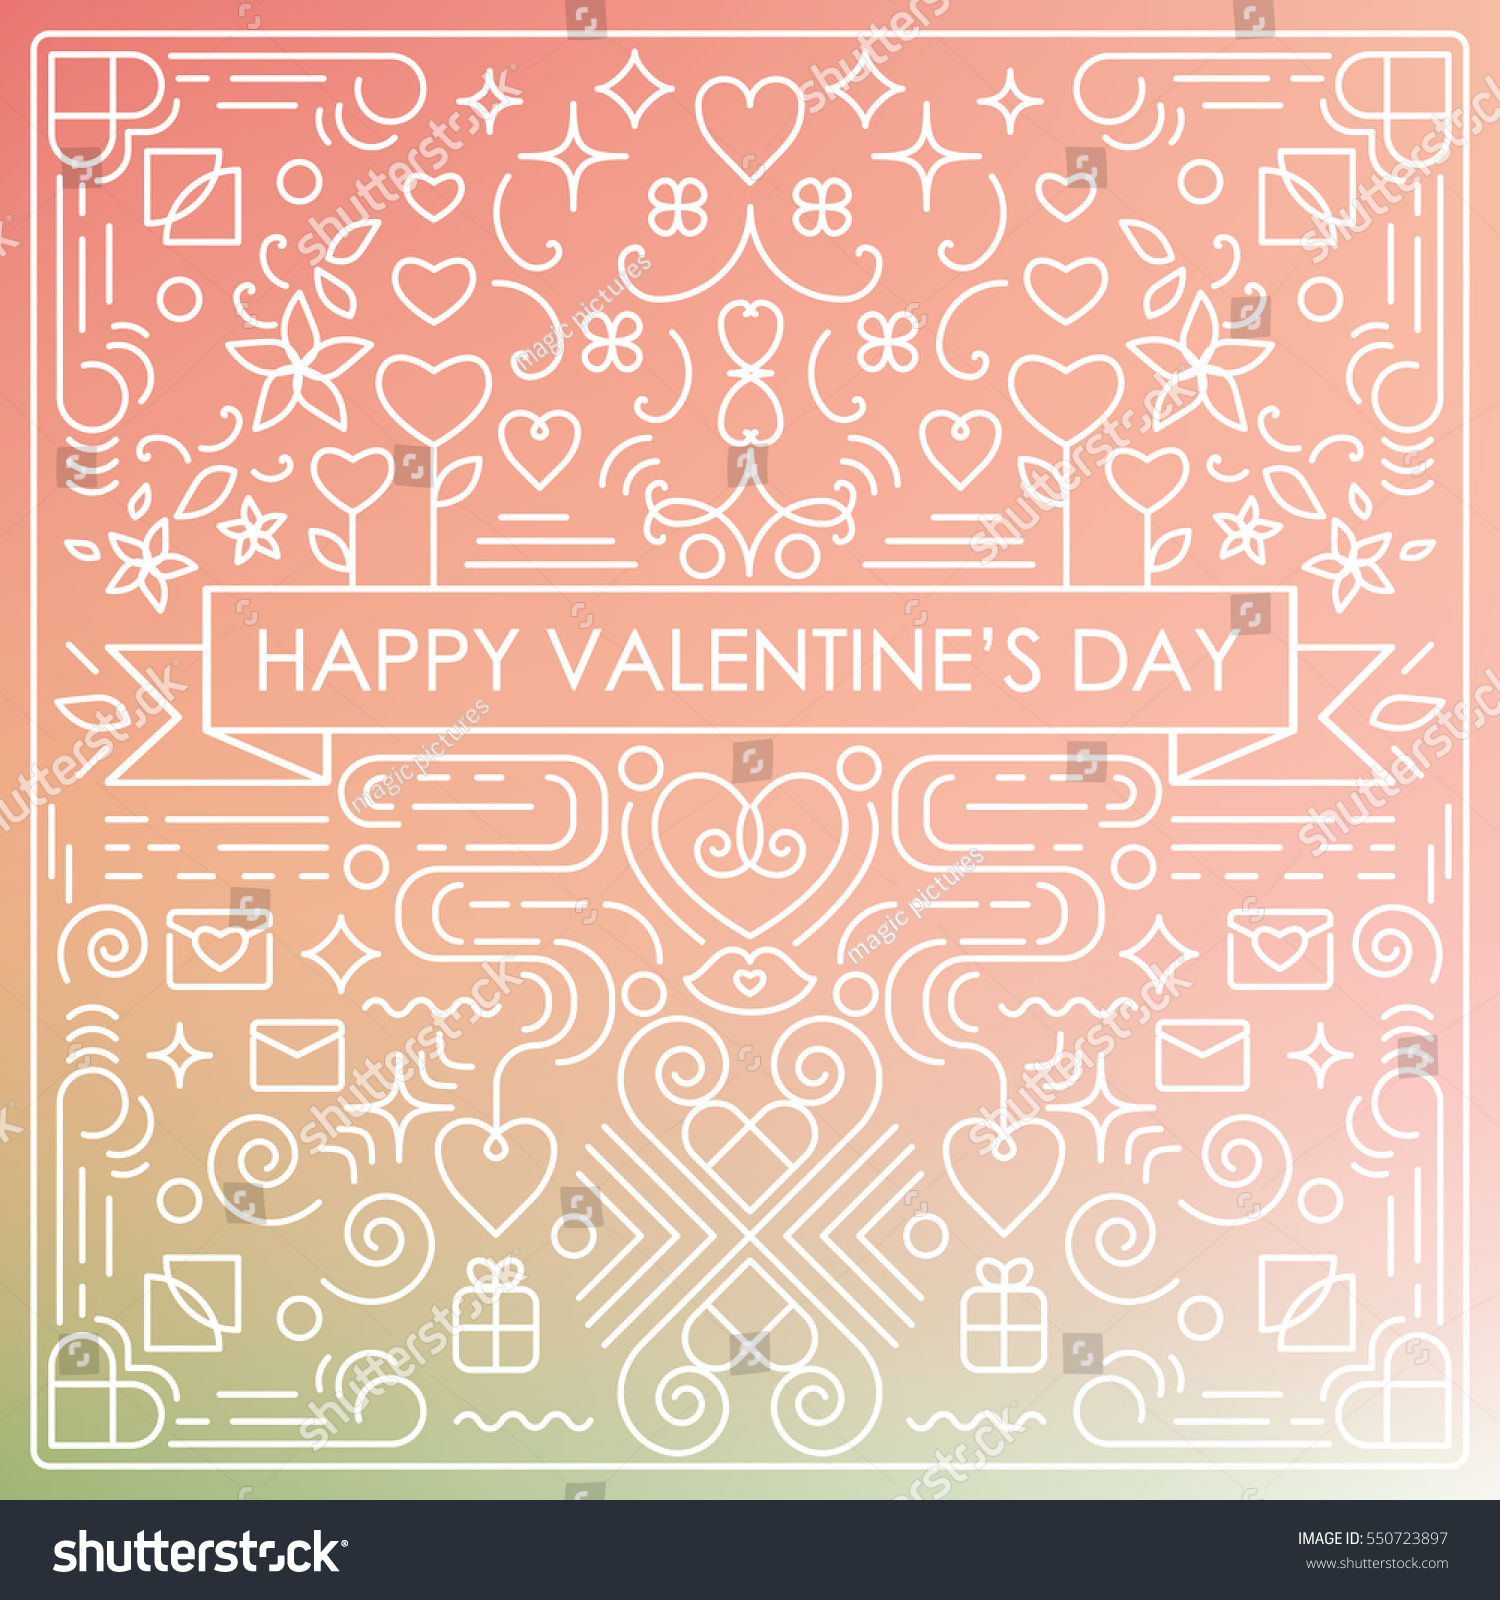 Vector Illustration Valentines Day Greeting Card Stock Vector Hd